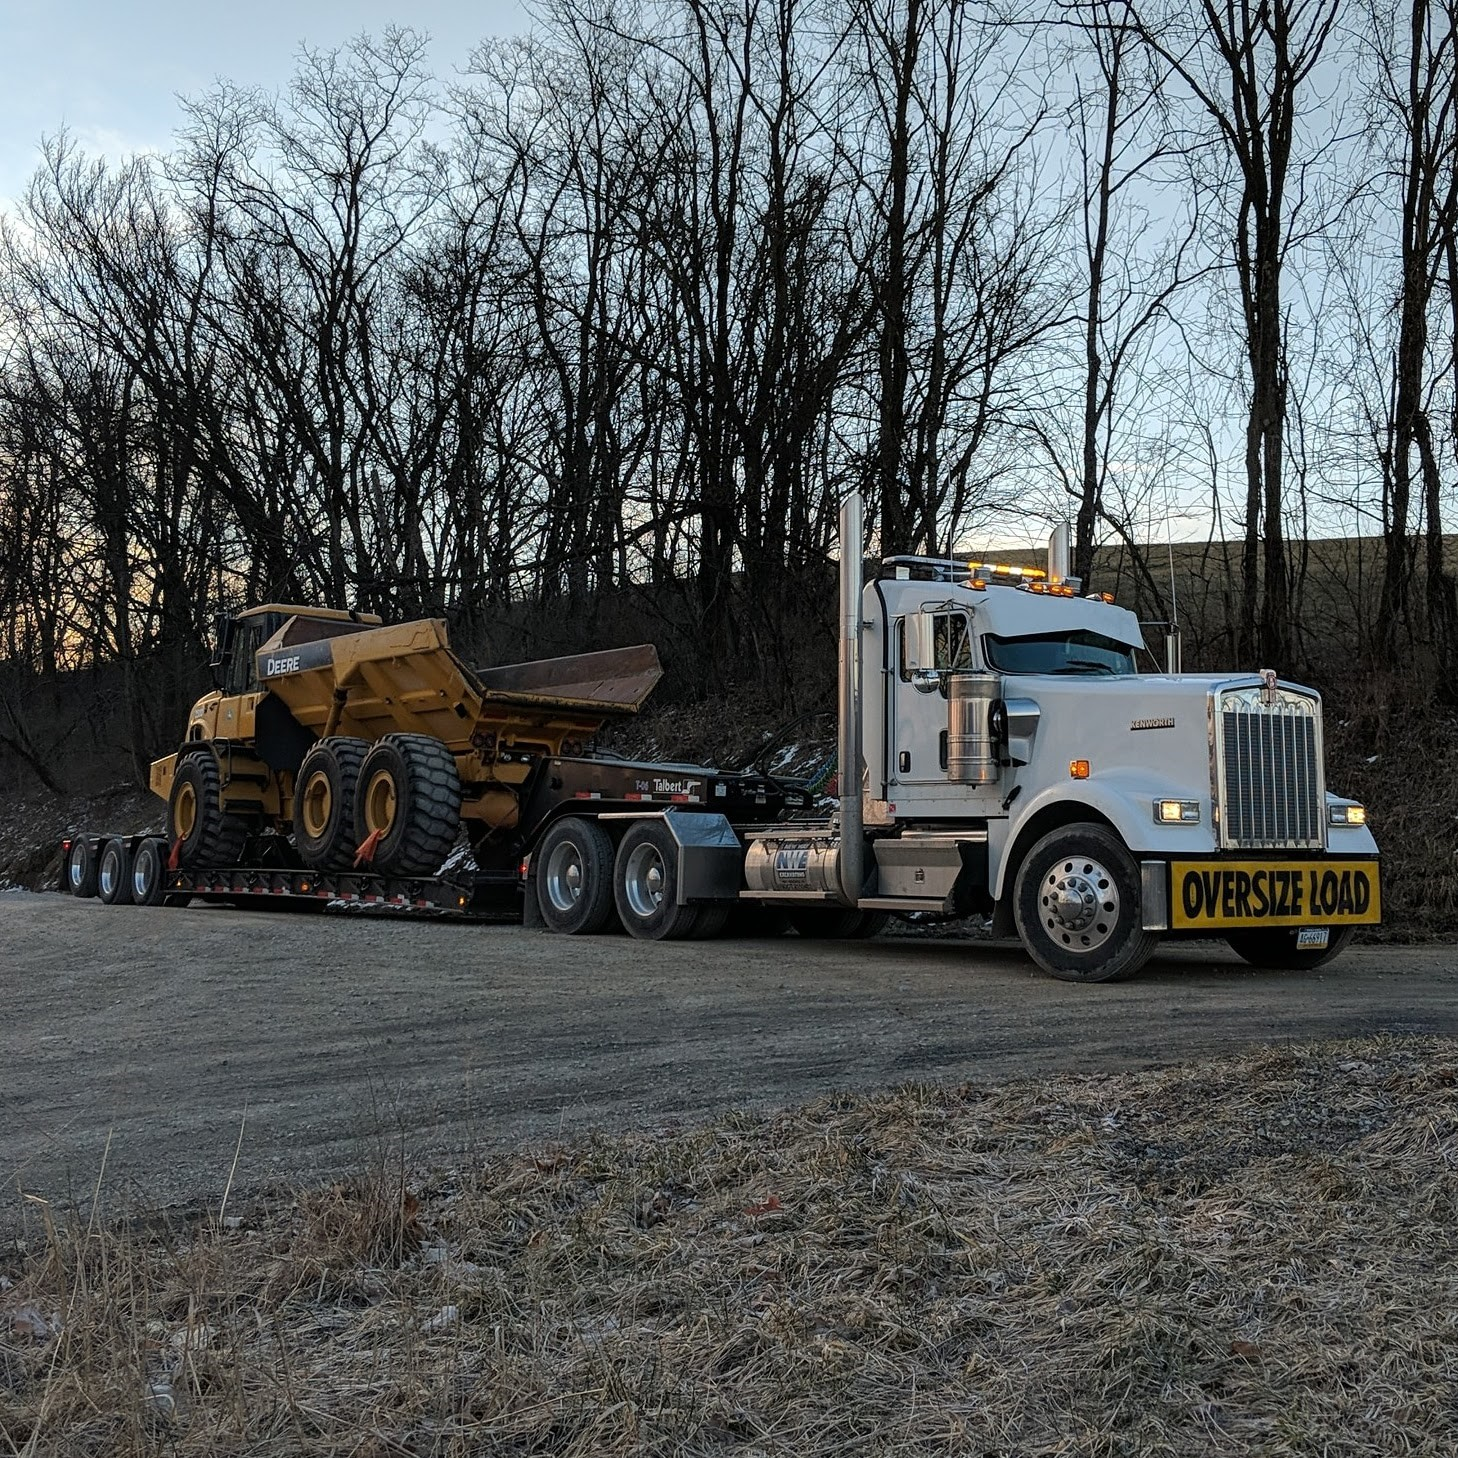 Oversize,heavy haul, & permitted loads -